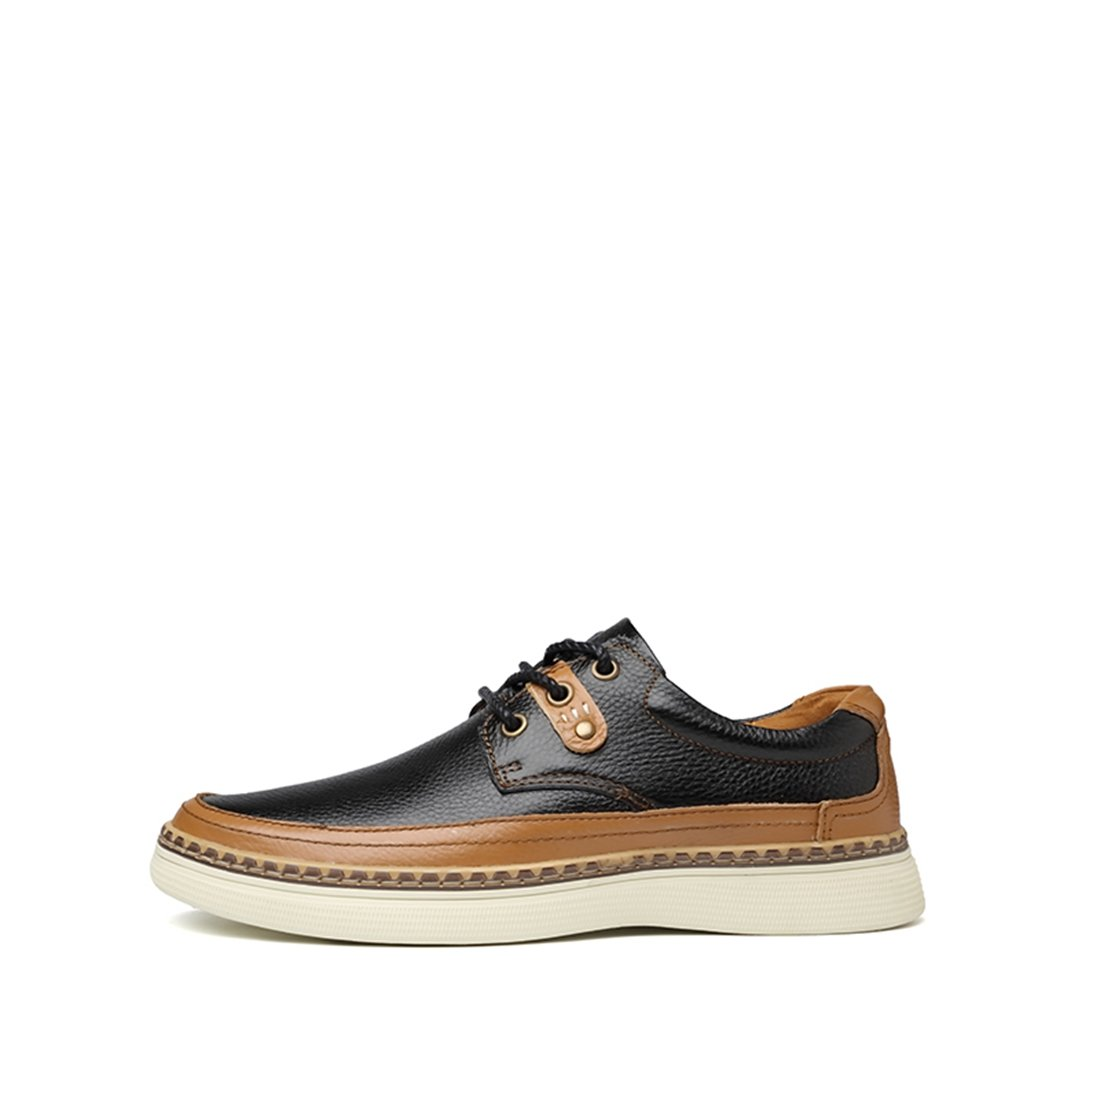 Miyoopark Men's Lace-up Synthetic Low-top Fashion Sneaker Oxford Shoes:  Amazon.com.au: Fashion